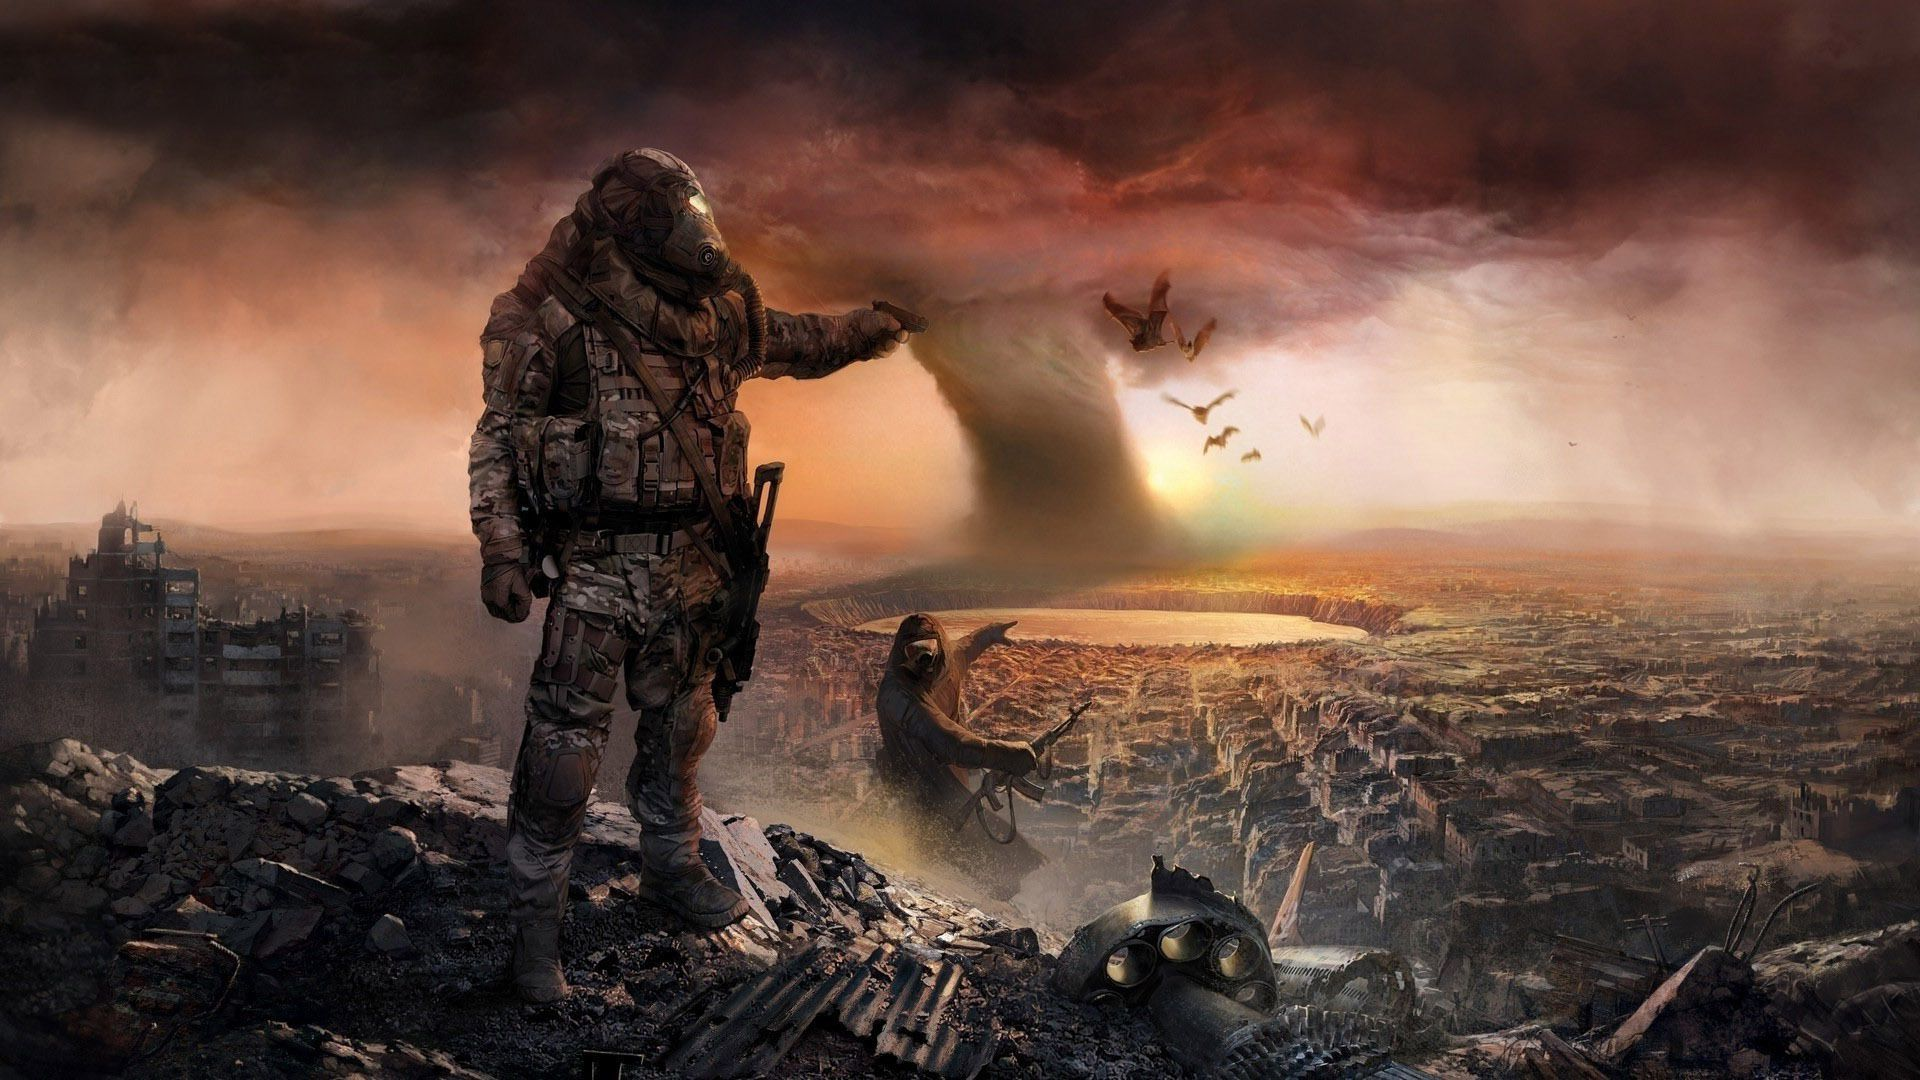 Post Apocalyptic Art Post Apocalyptic City Hd Wallpaper